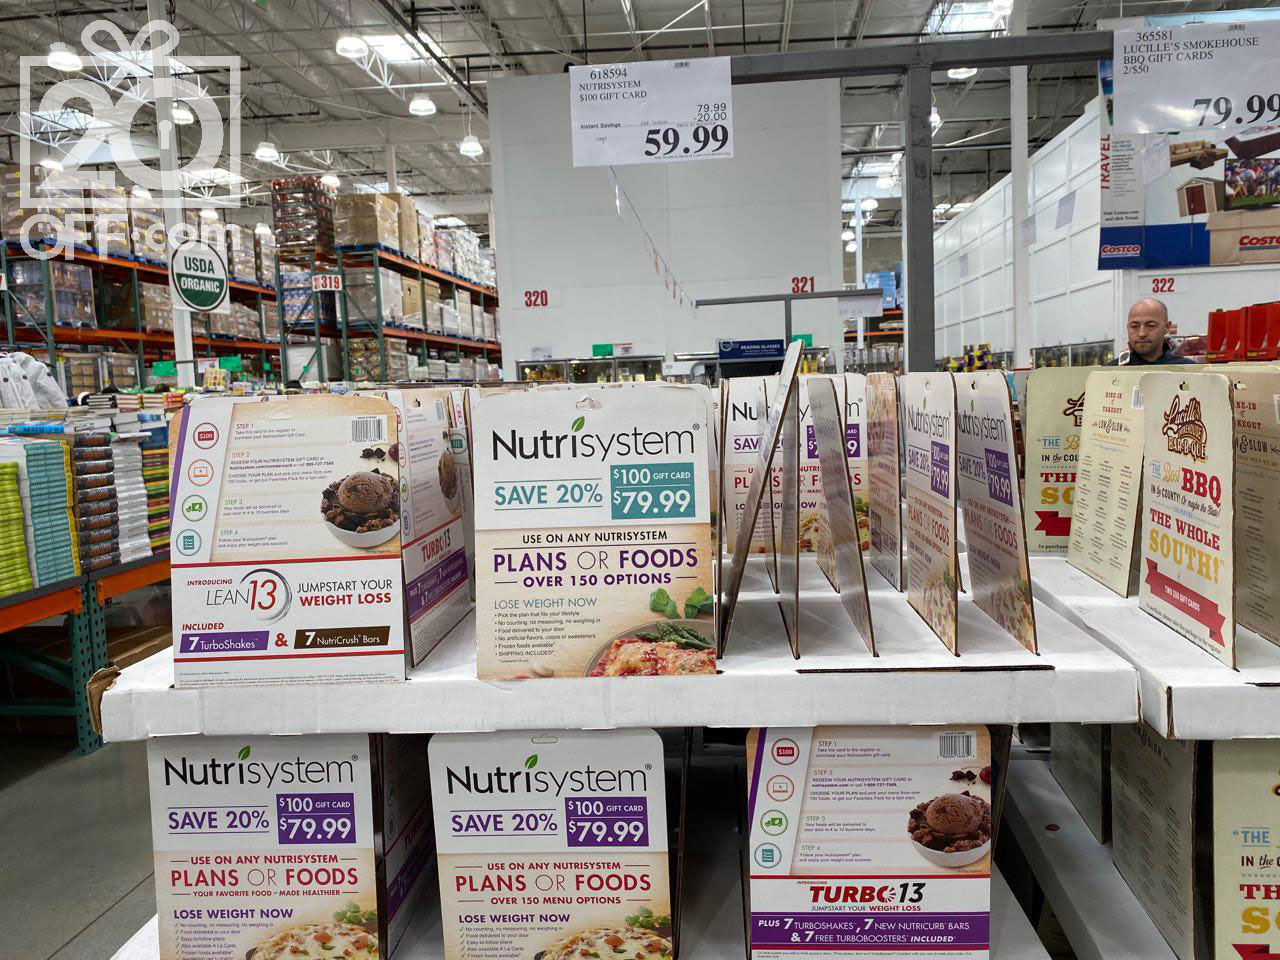 Costco Nutrisystem Gift Card Sale 2019